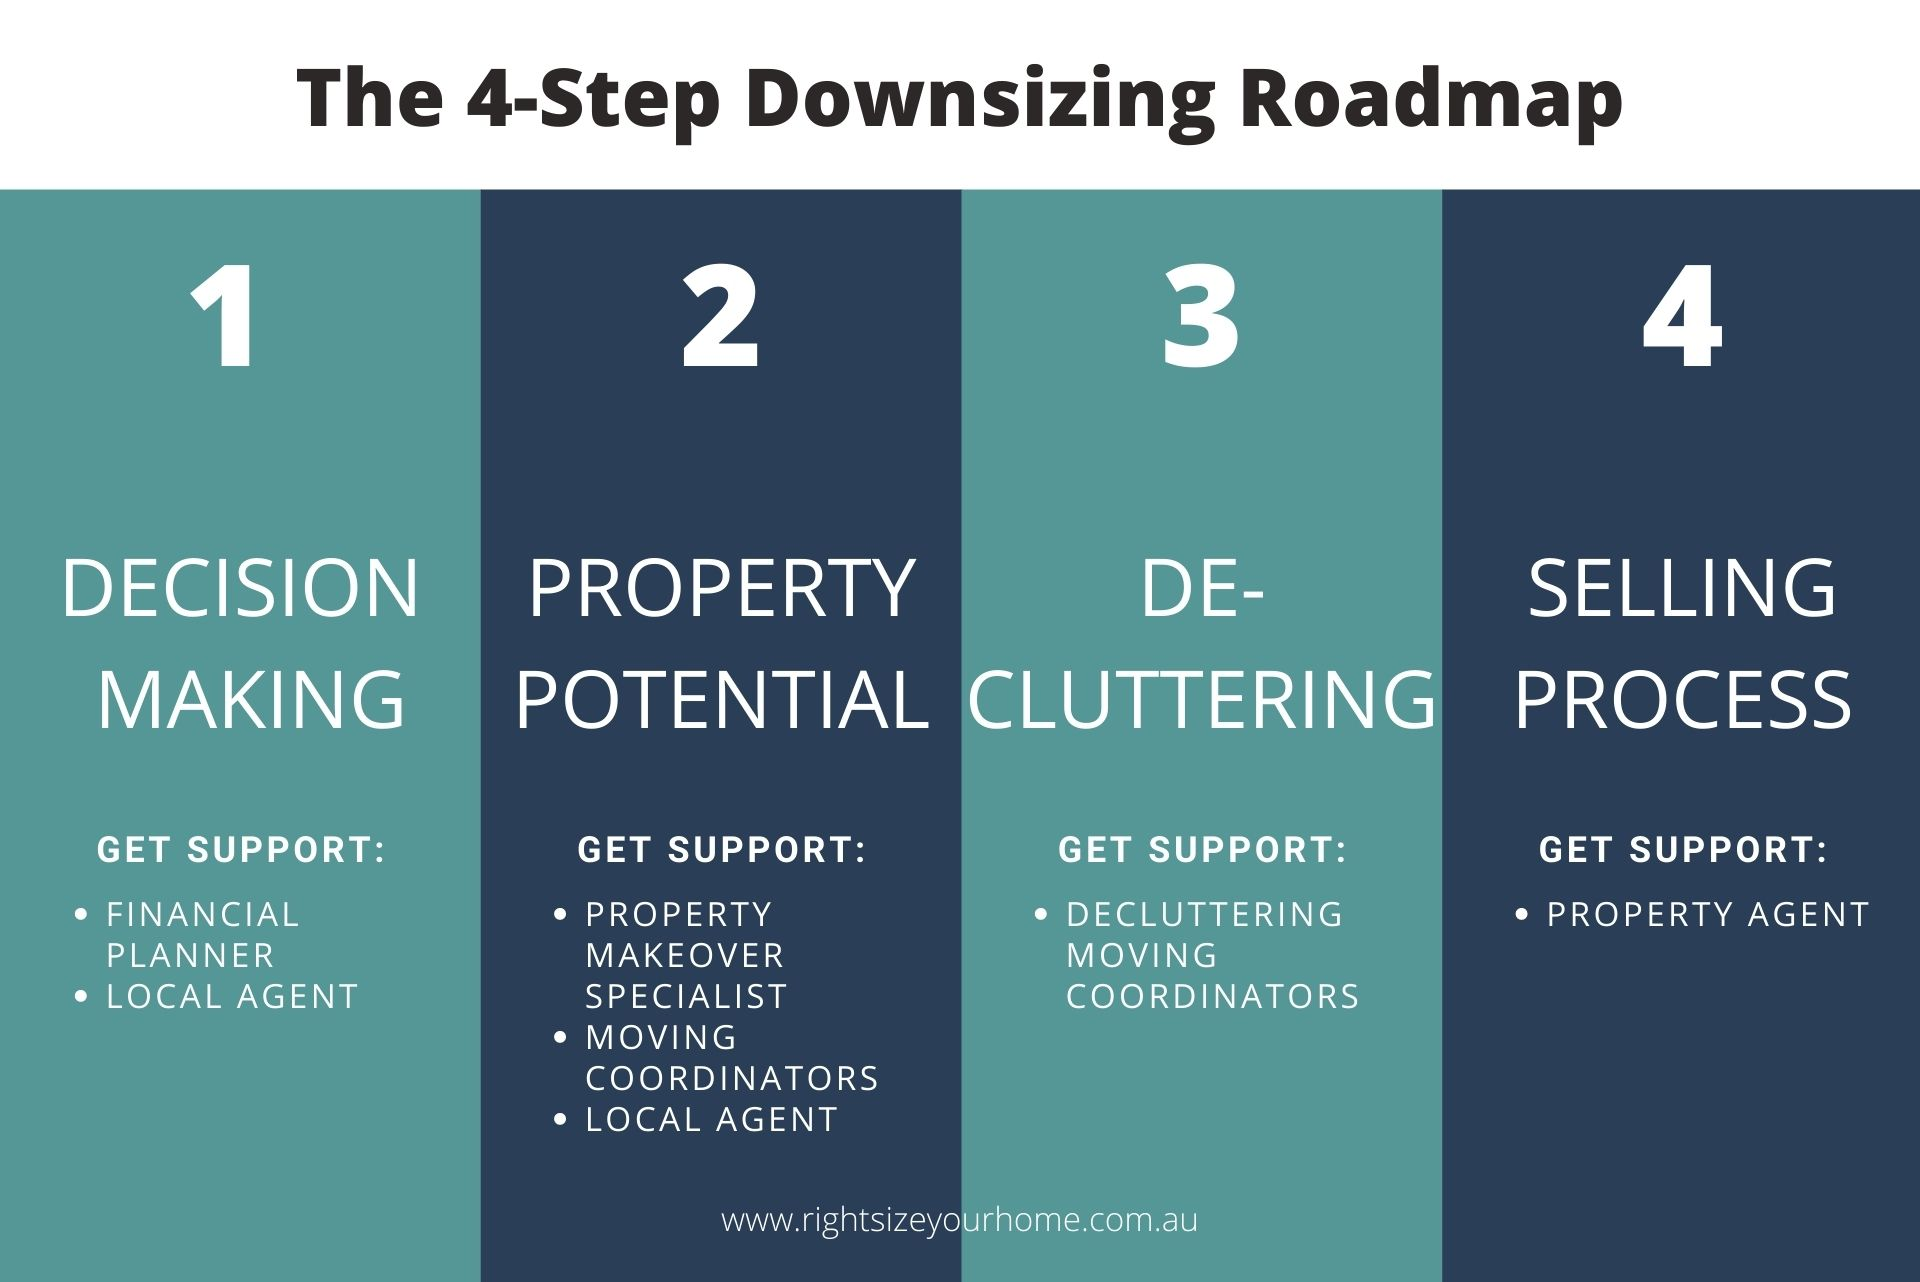 the 4-step downsizing roadmap